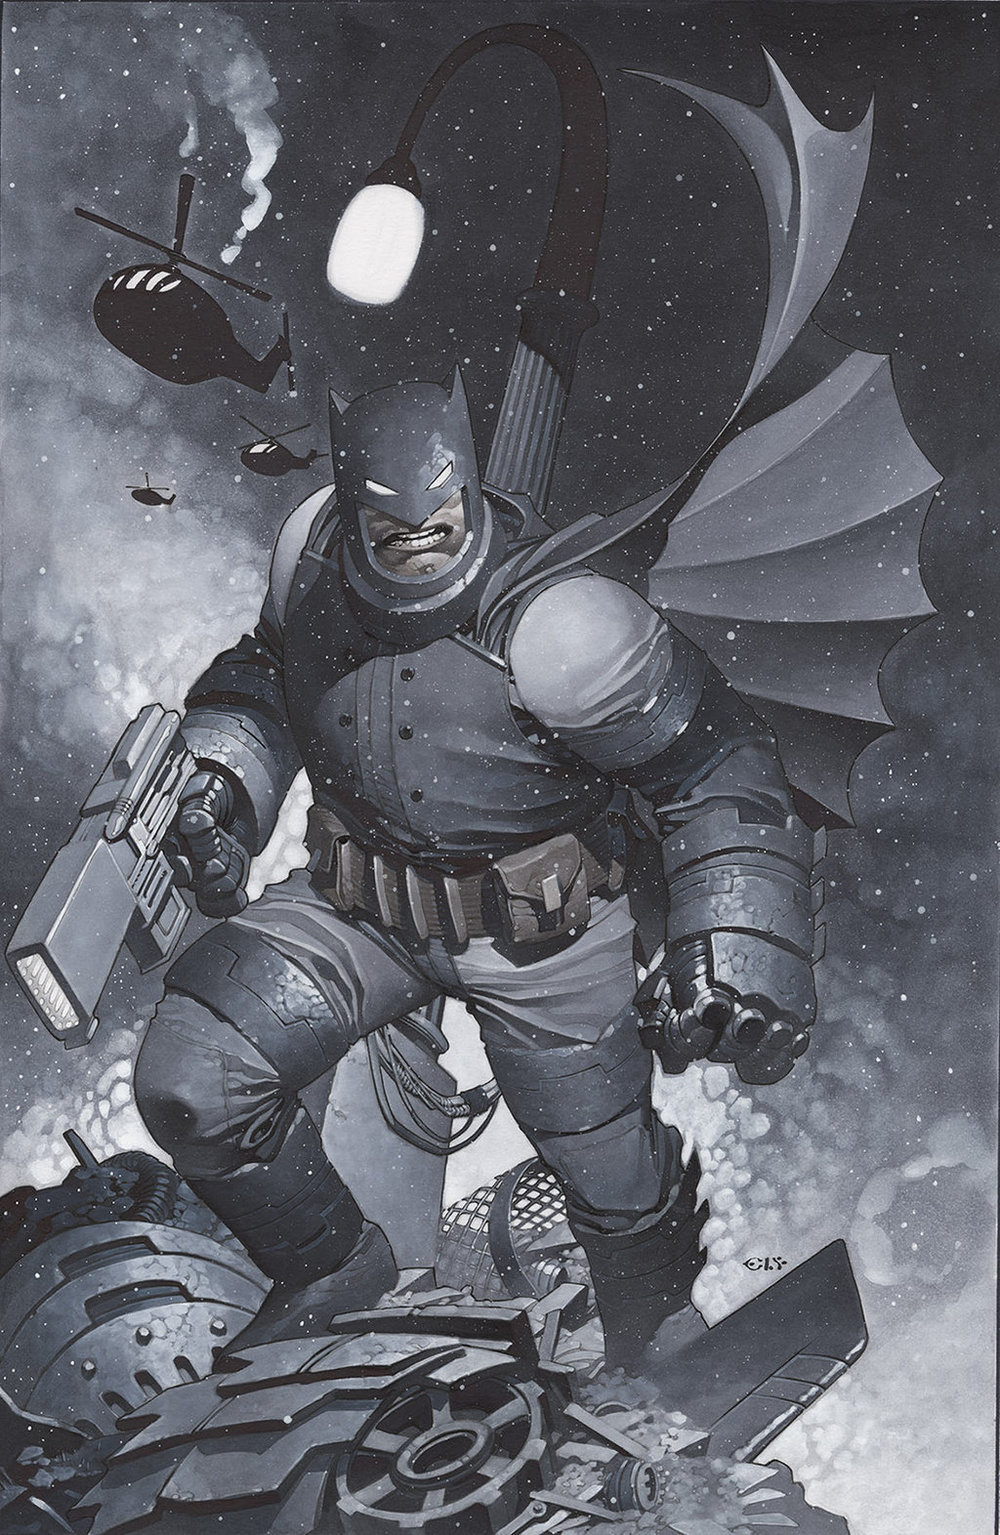 dark_knight_returns_by_christopherstevens-d8vhsy9.jpg